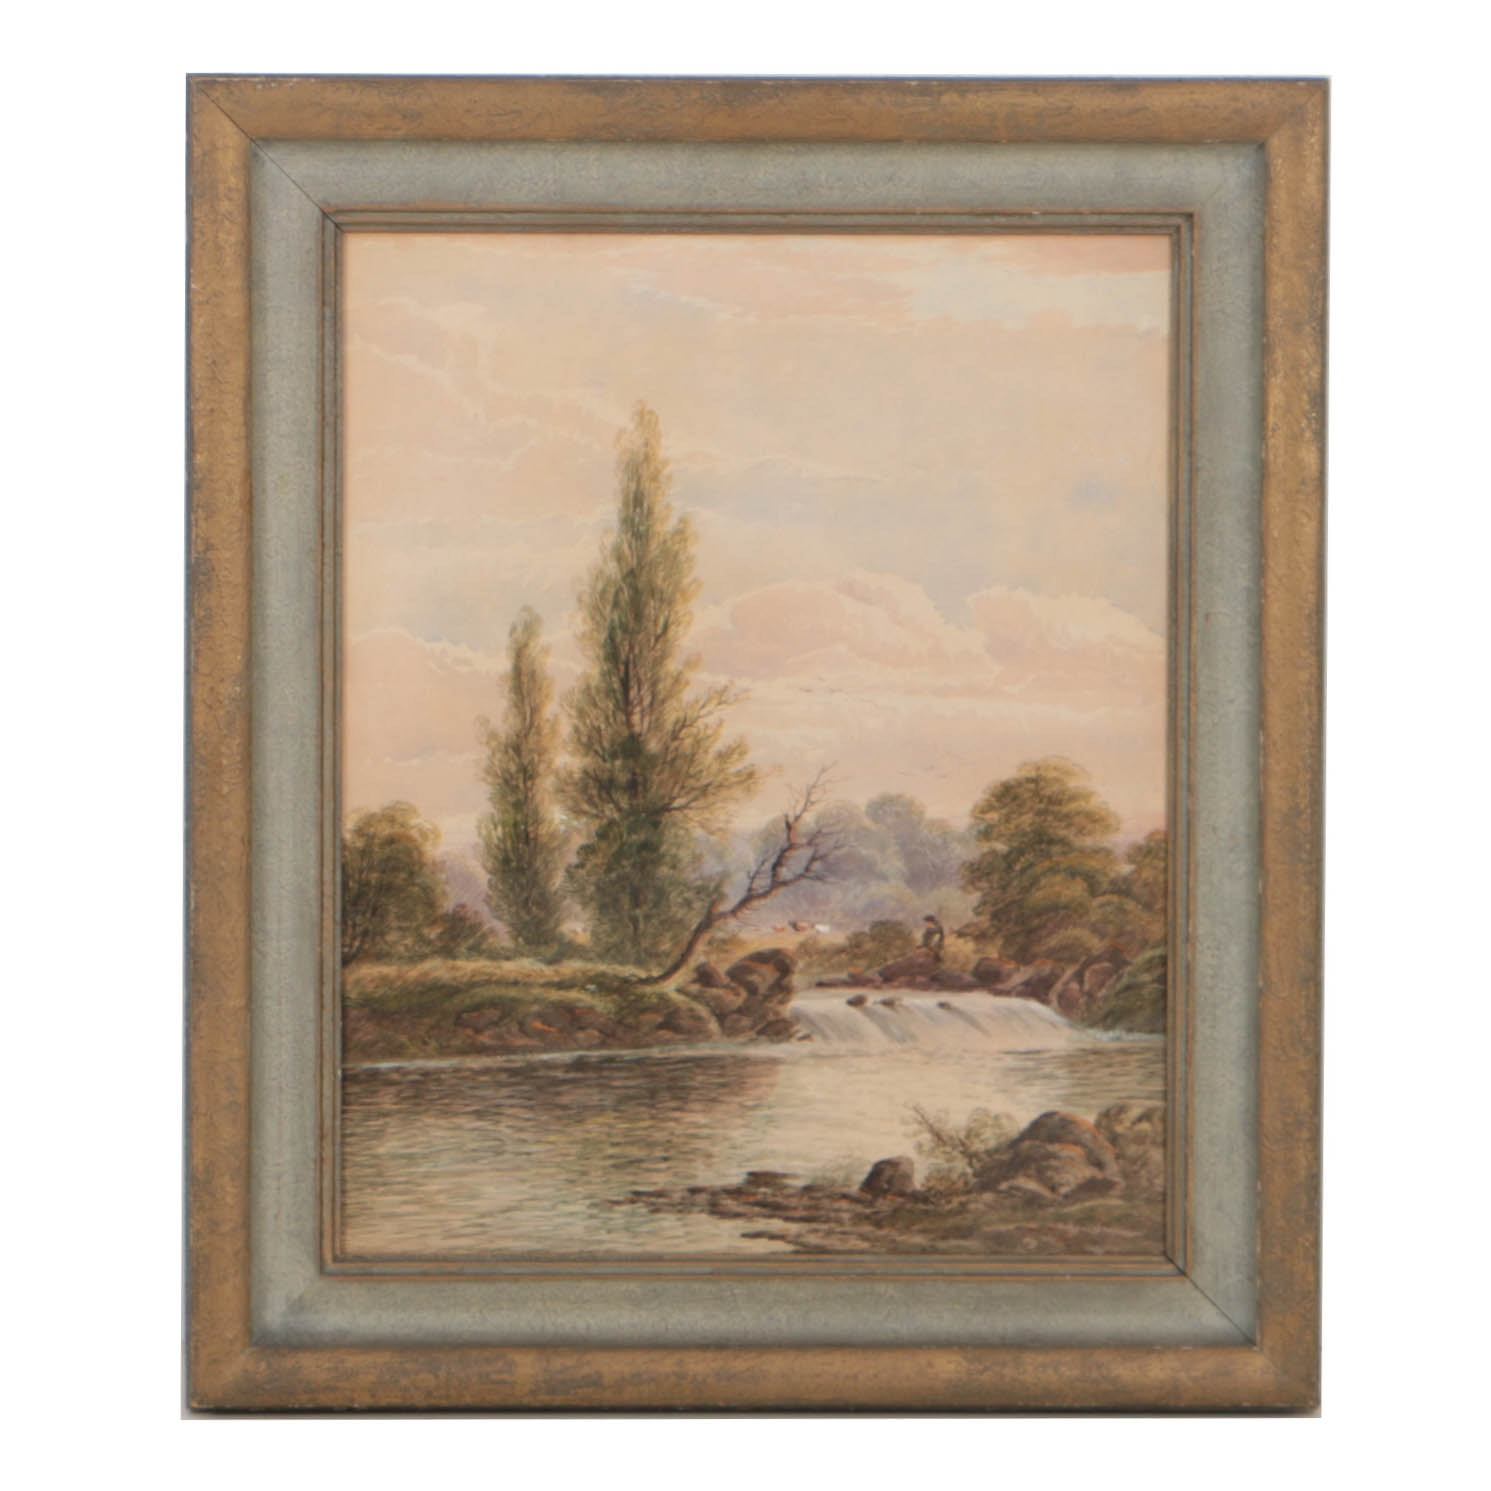 William H. Vernon Watercolor Painting on Paper Fishing Scene